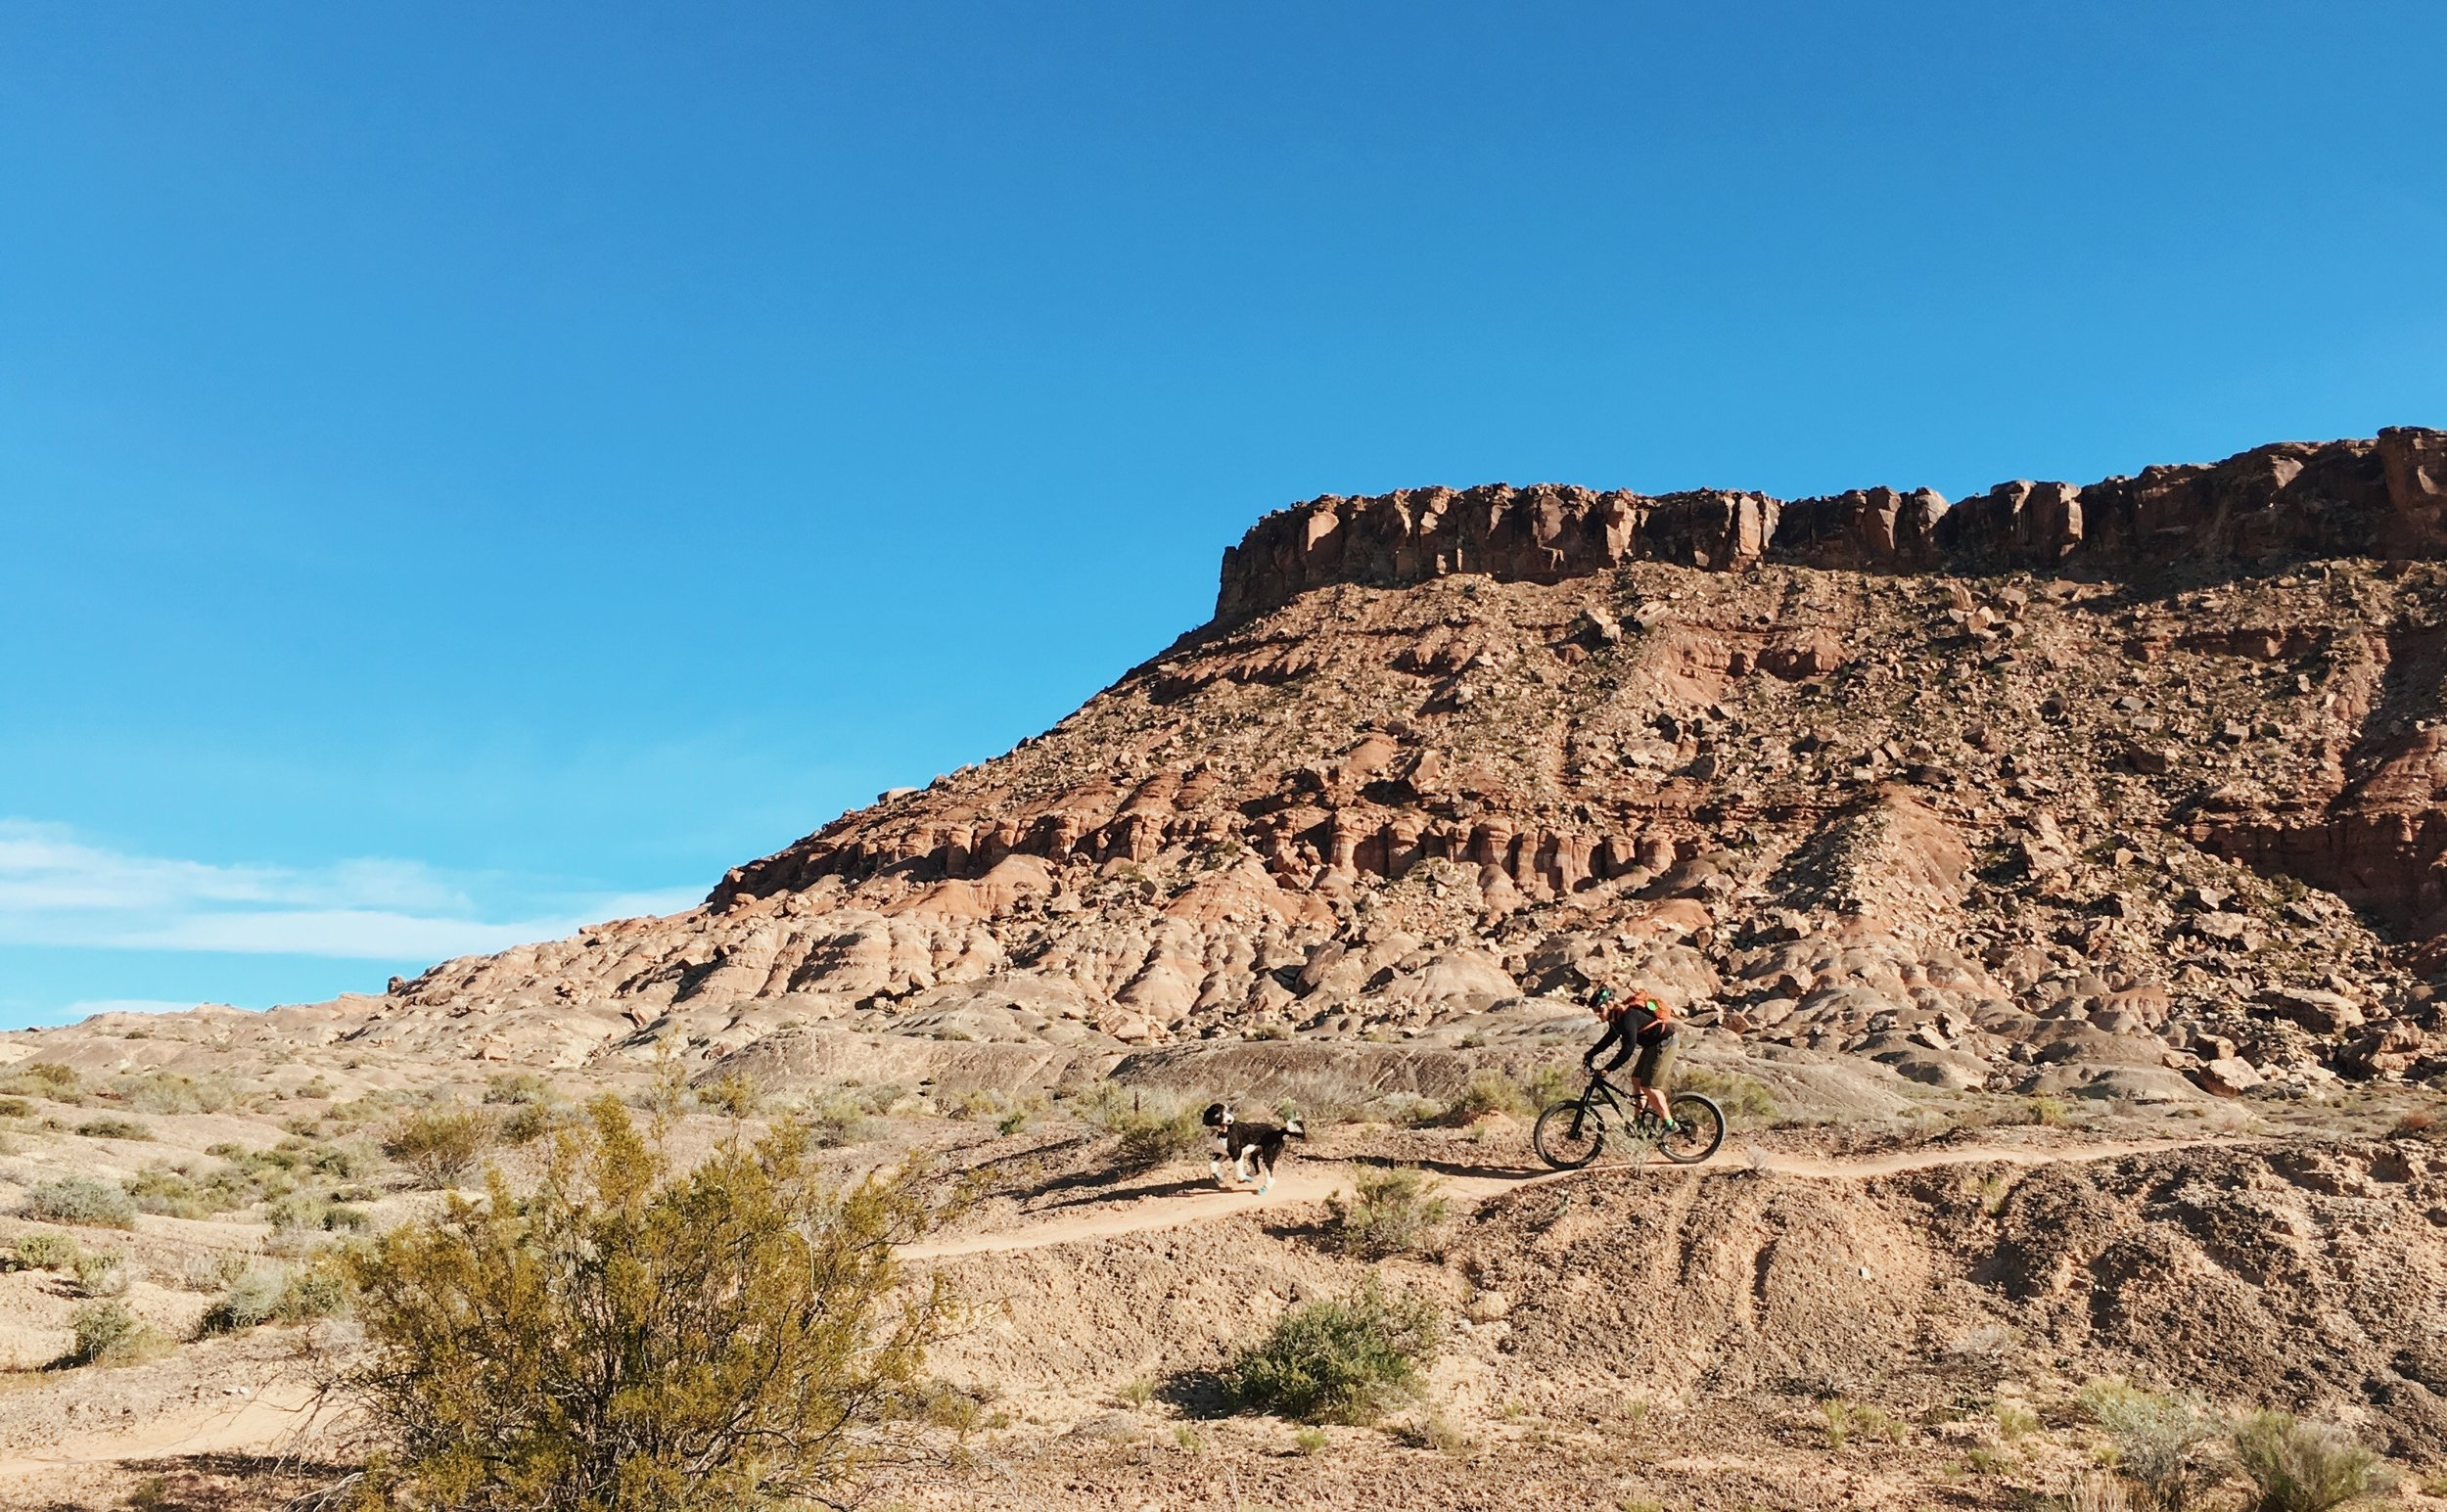 Mountain Biking - St. George has a rich 20-year mountain biking, and racing history and Divario will sit right in the middle of it all.Learn More